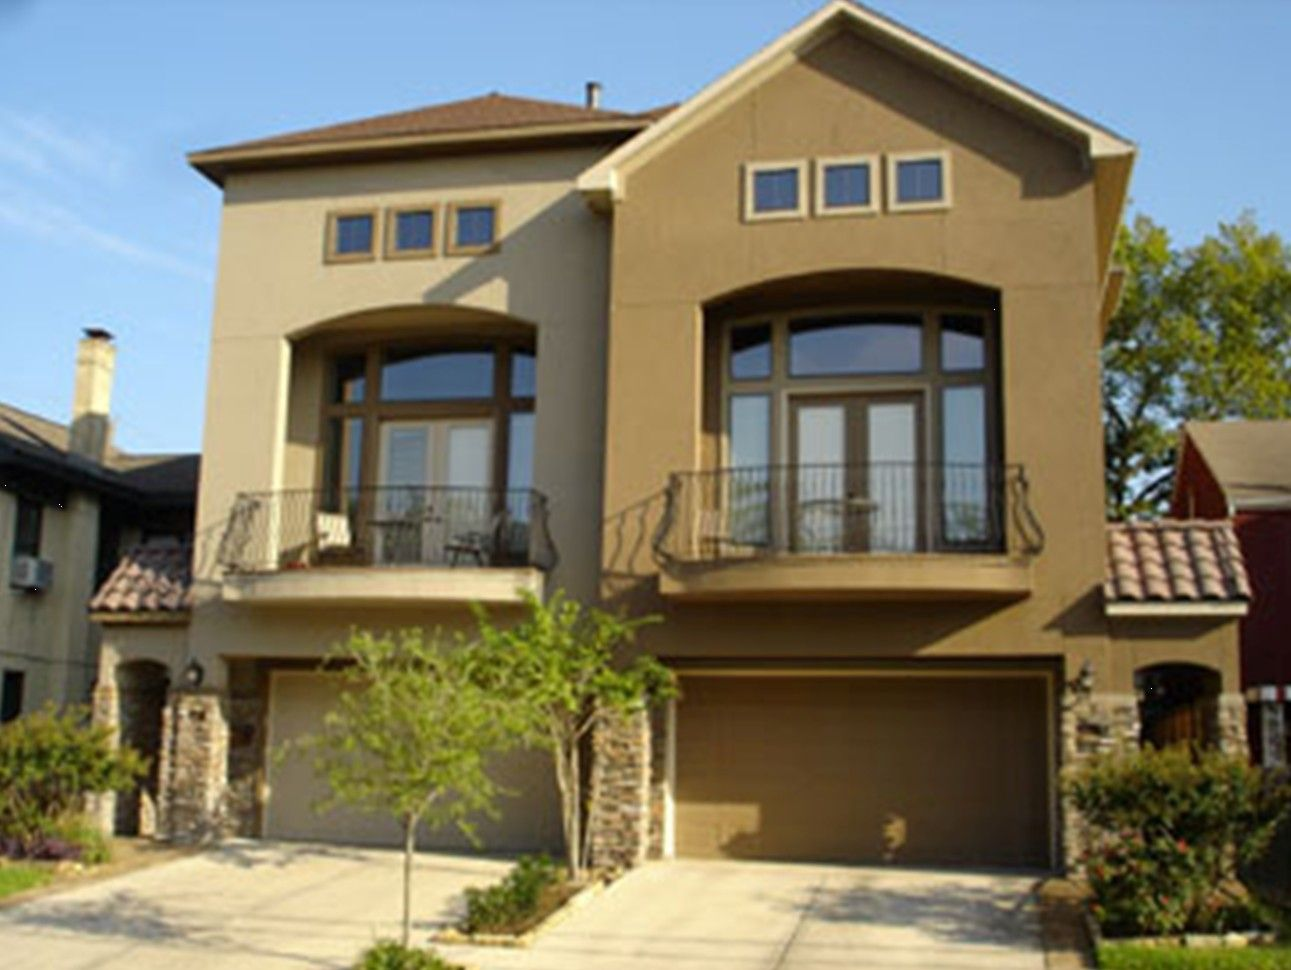 Exterior stucco house paint ideas - Exterior Colors